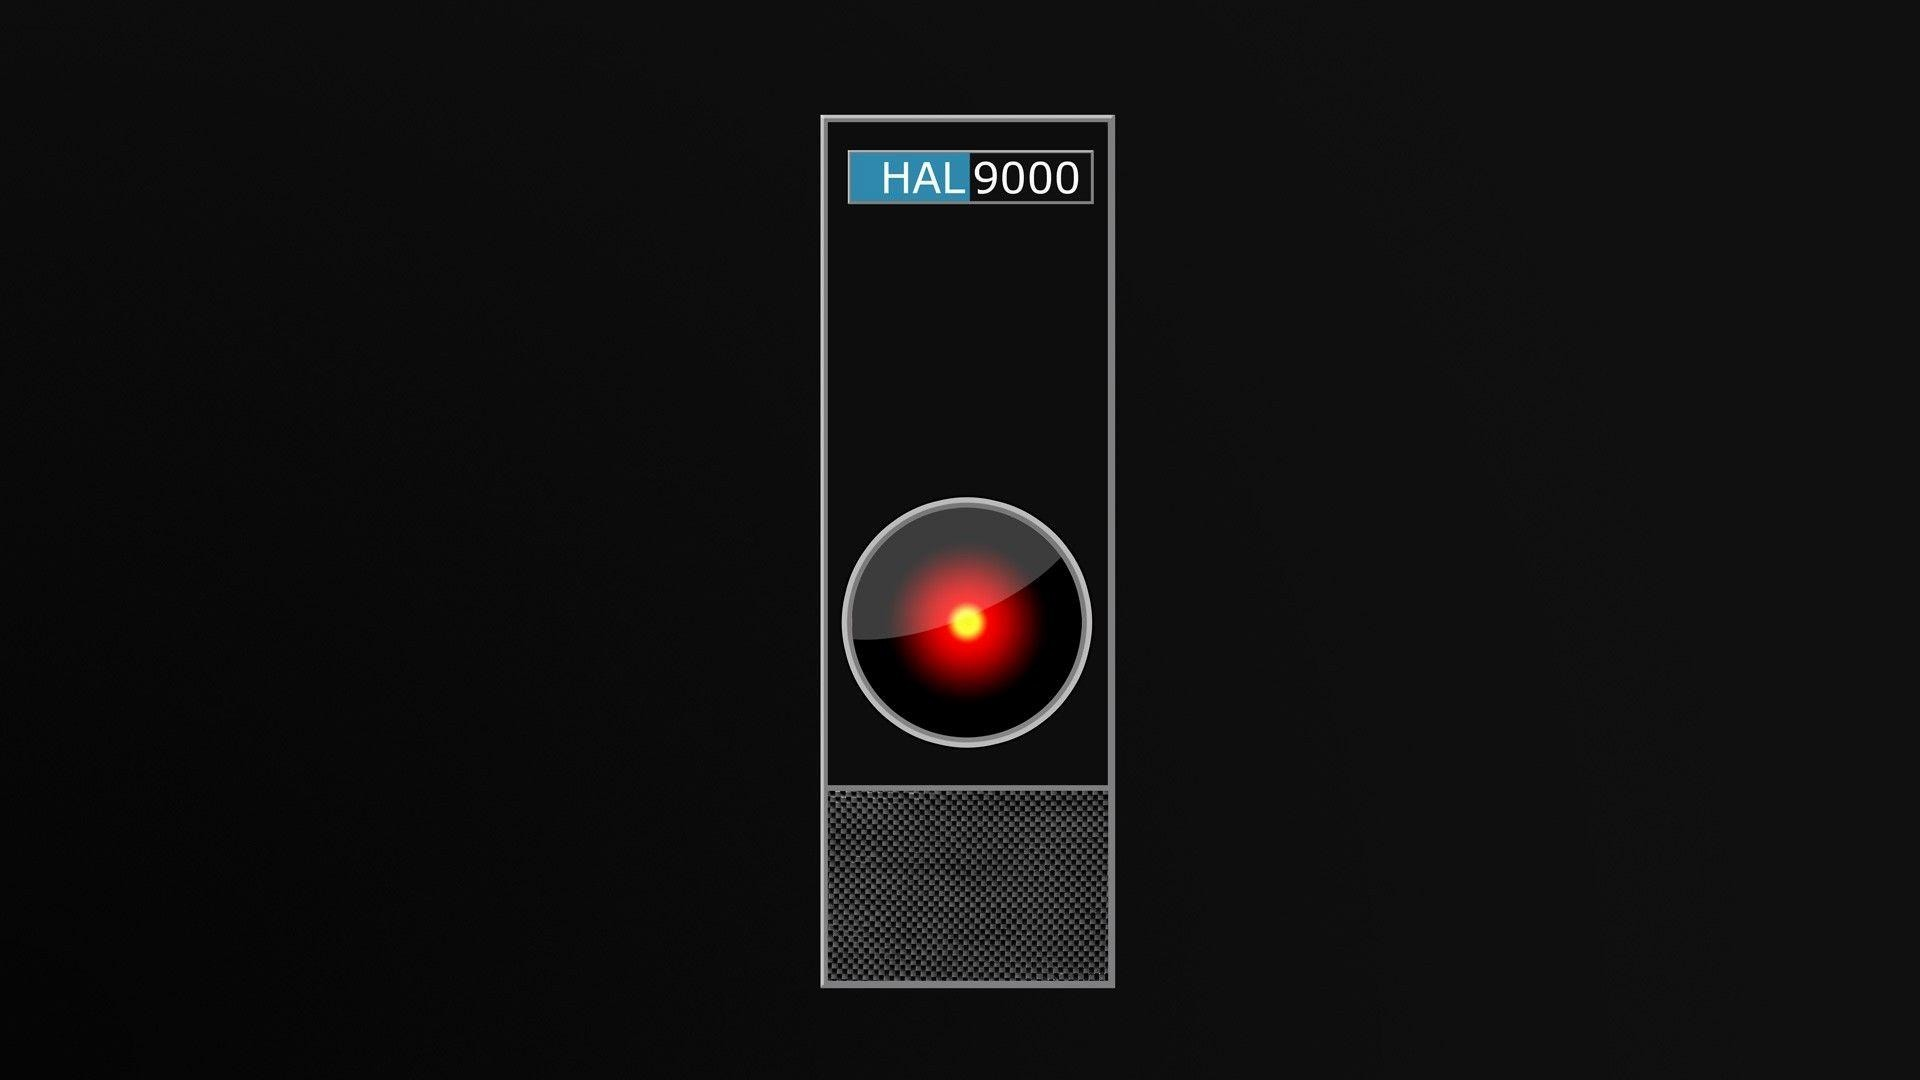 1920x1080 ... hal 9000 wallpaper ...